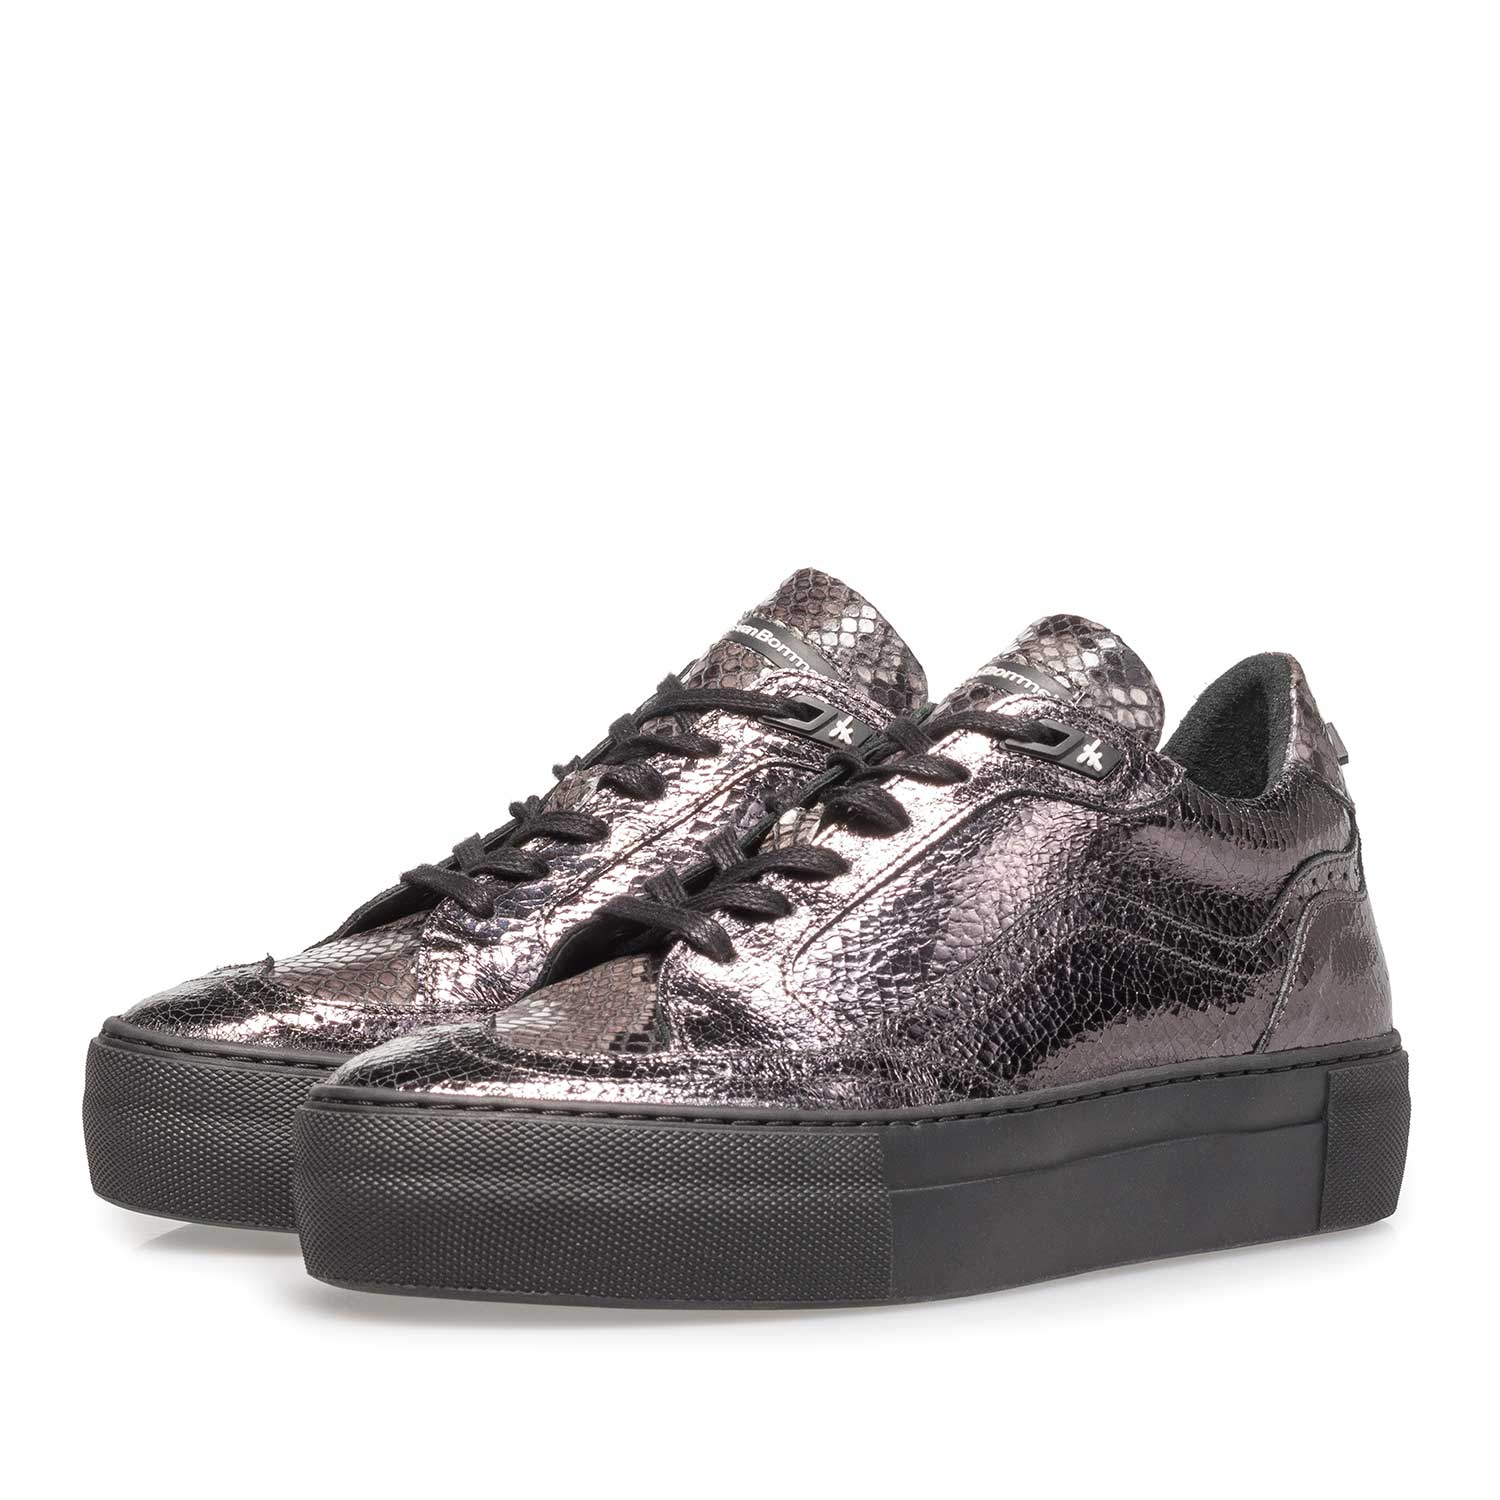 85282/02 - Dark silver-coloured leather lace shoe with a metallic print